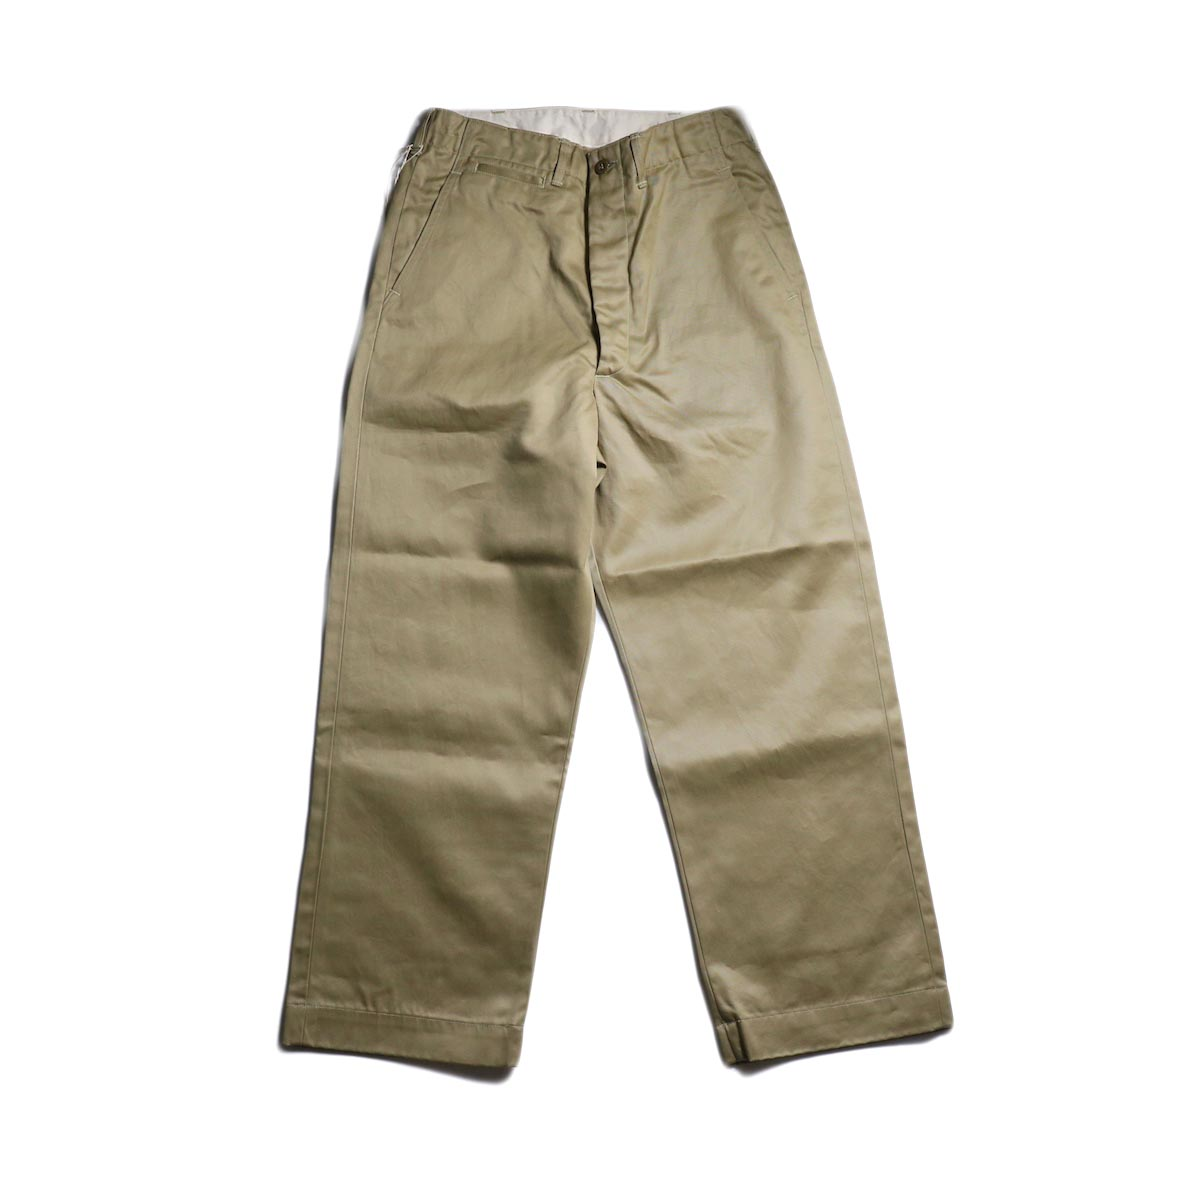 orSlow / VINTAGE FIT ARMY TROUSERS (Khaki)